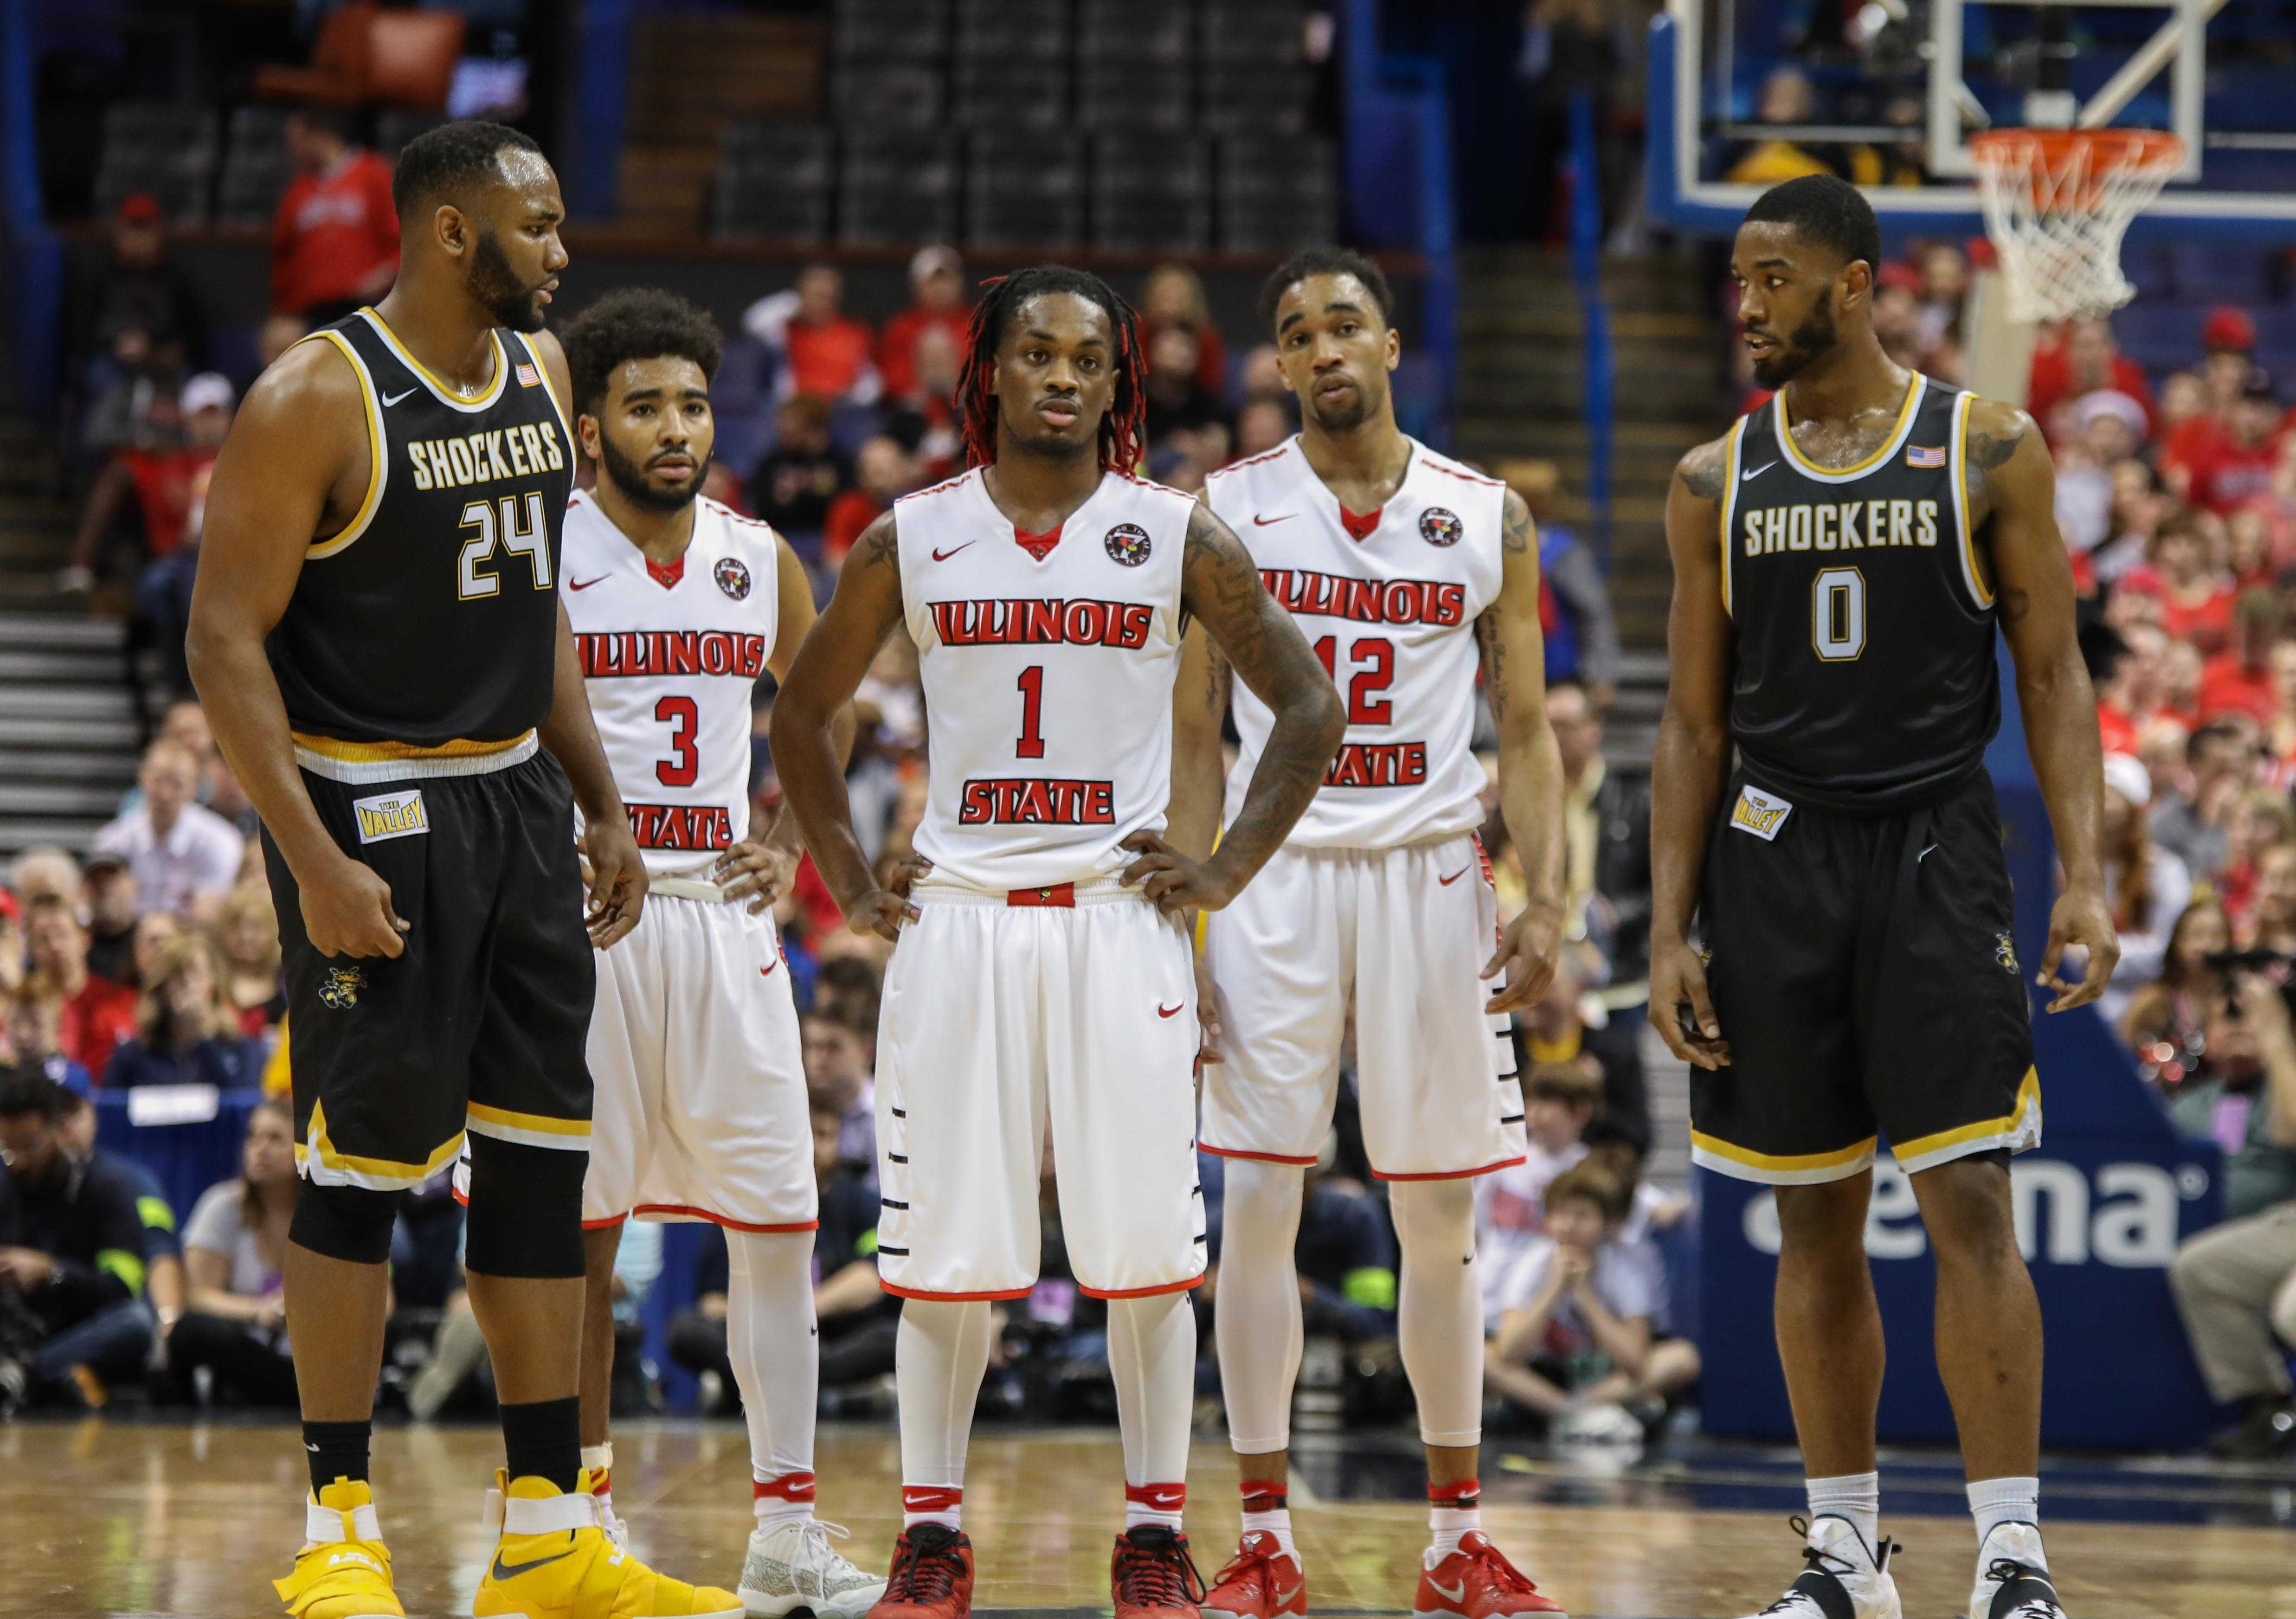 The Redbirds stand back and watch Wichita State shoot free throws late in the game.